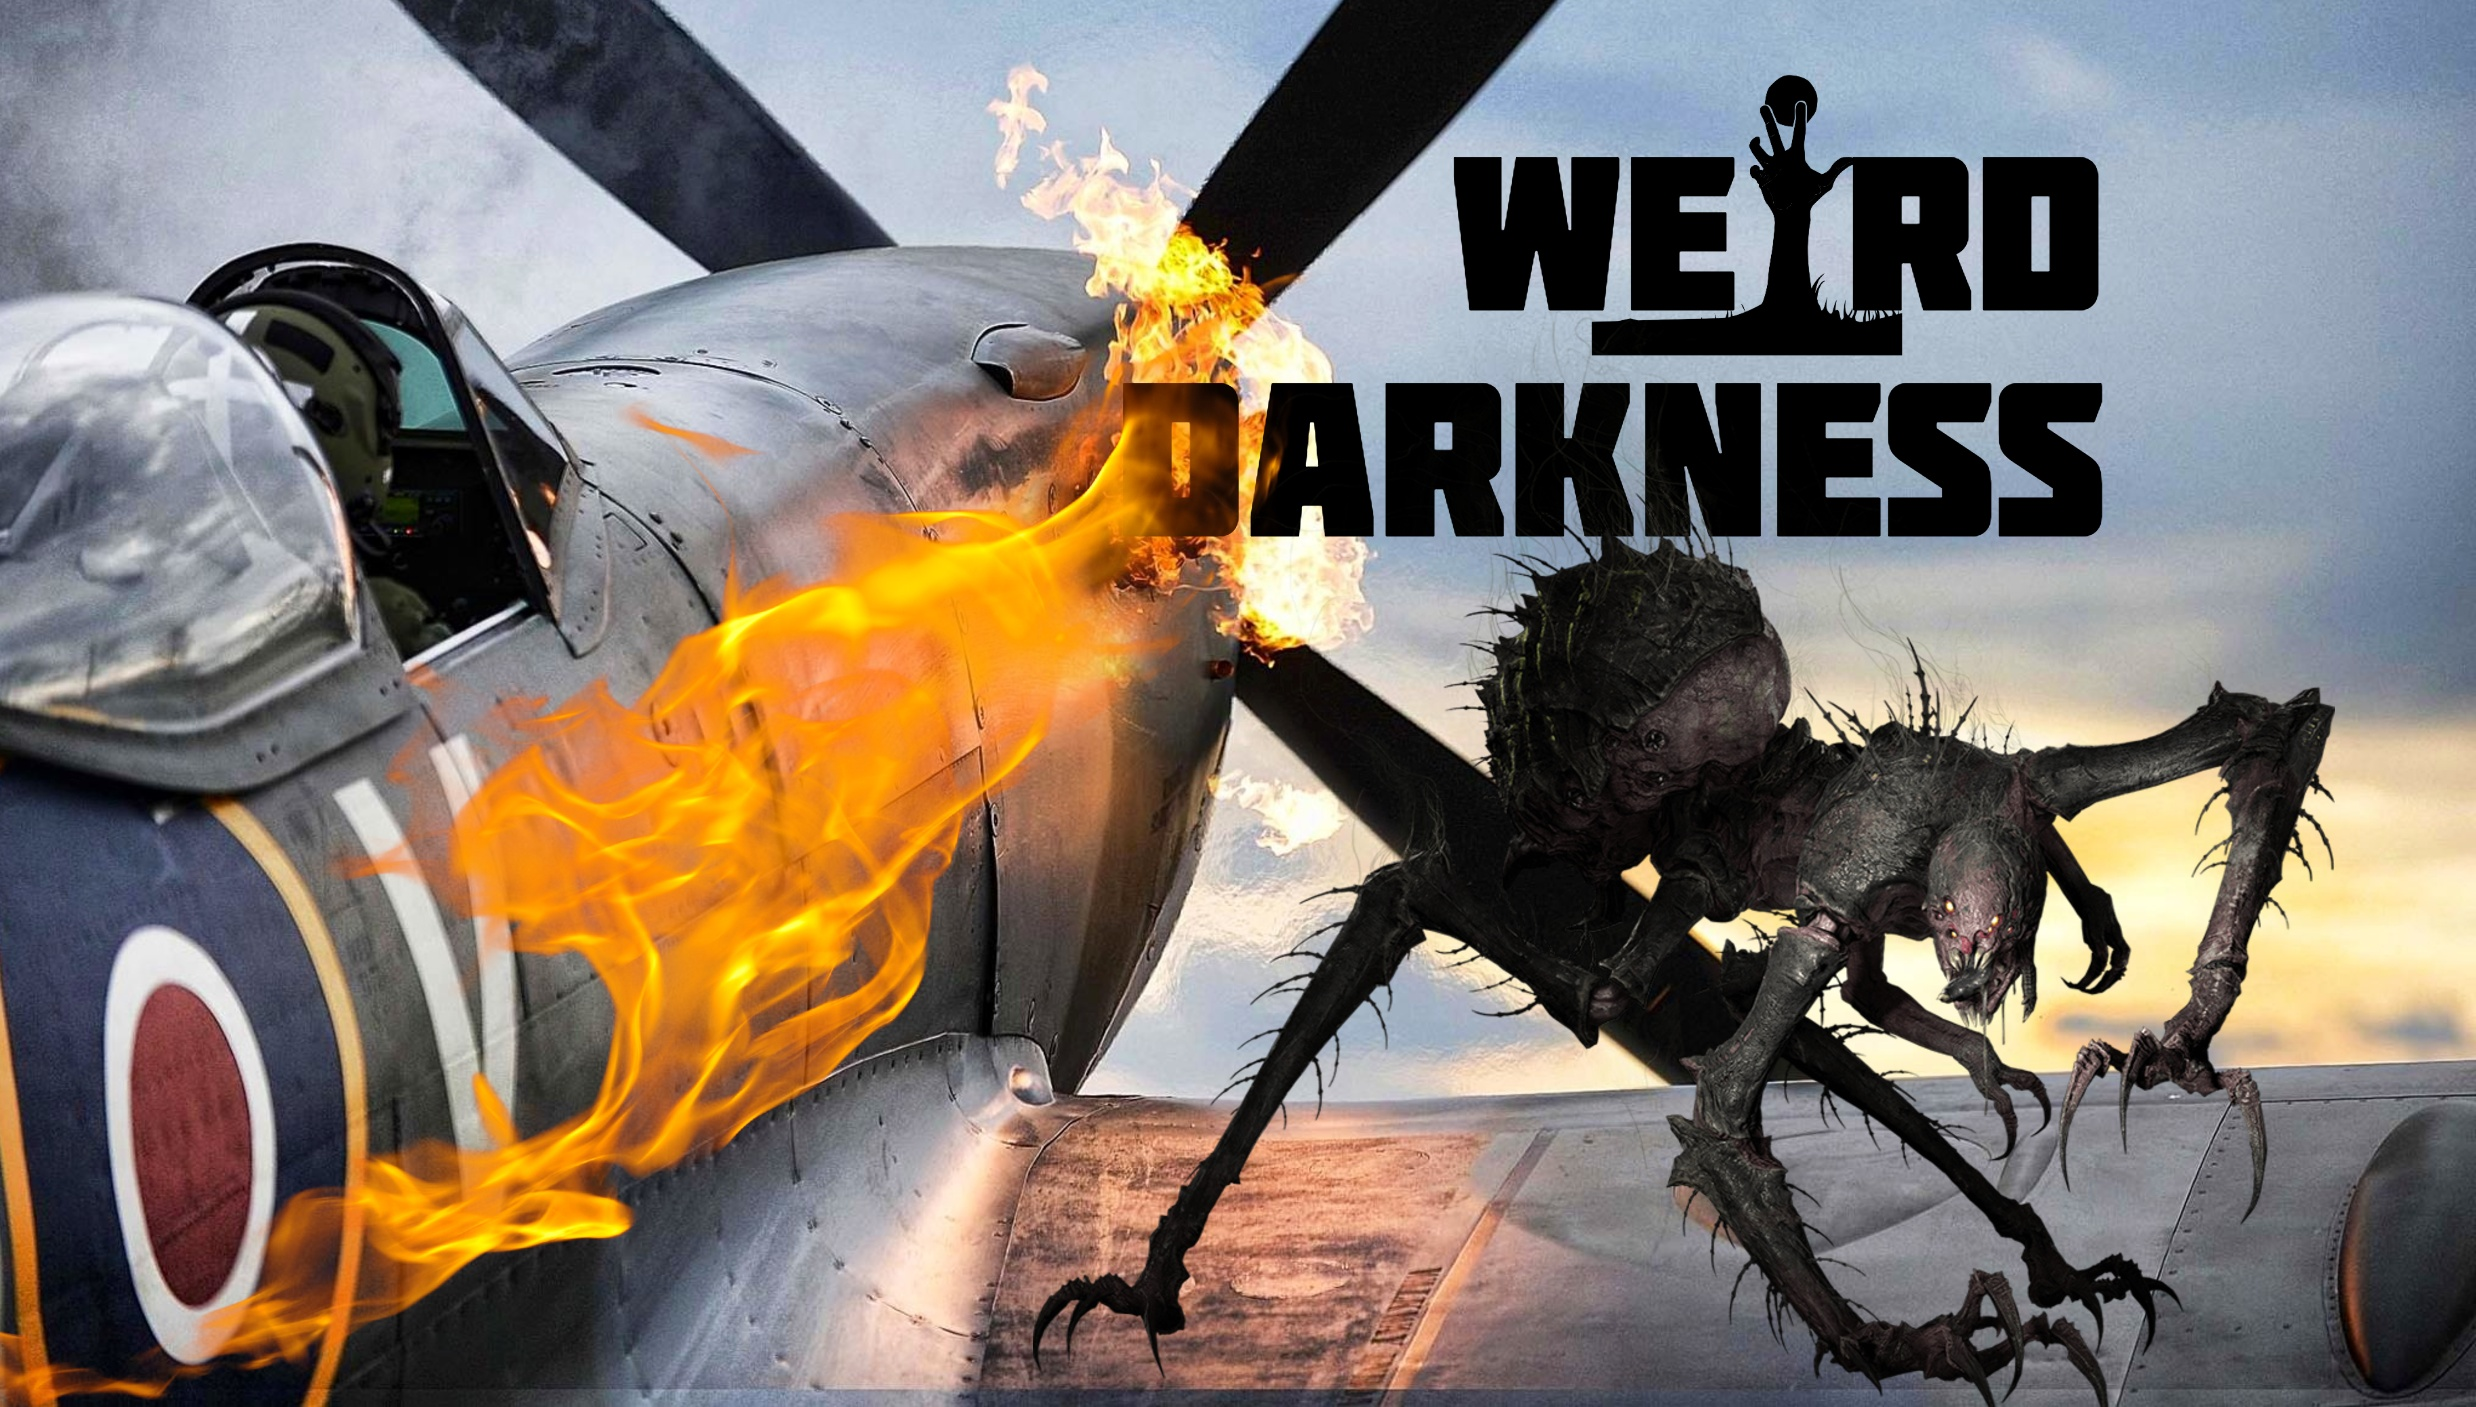 "#WeirdDarkness: ""THERE'S A CREATURE ON THE WING!"" and More Terrifying True Stories!"